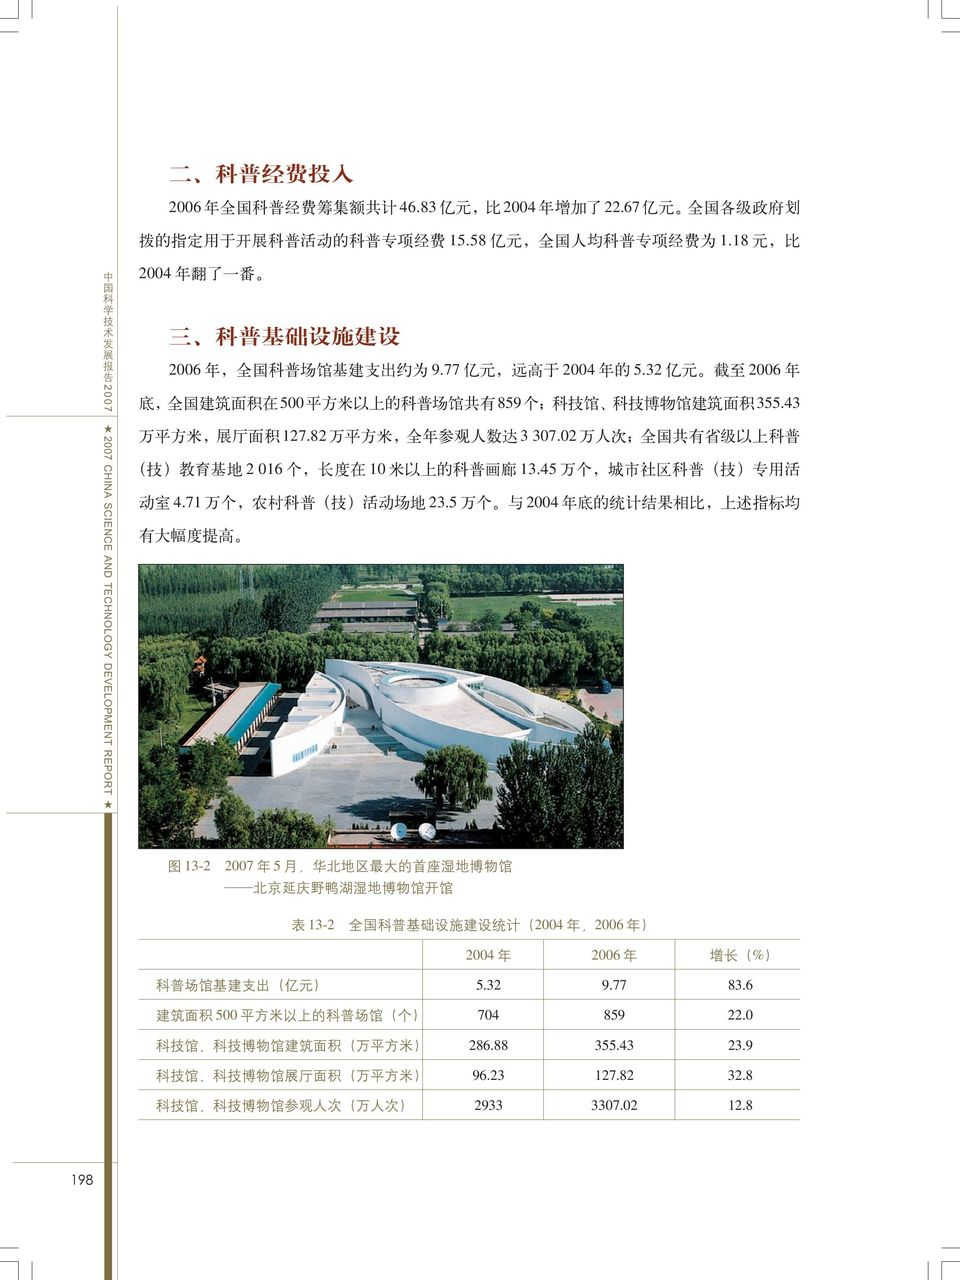 43 2007 CHINA SCIENCE AND TECHNOLOGY DEVELOPMENT REPORT 127.82 3 307.